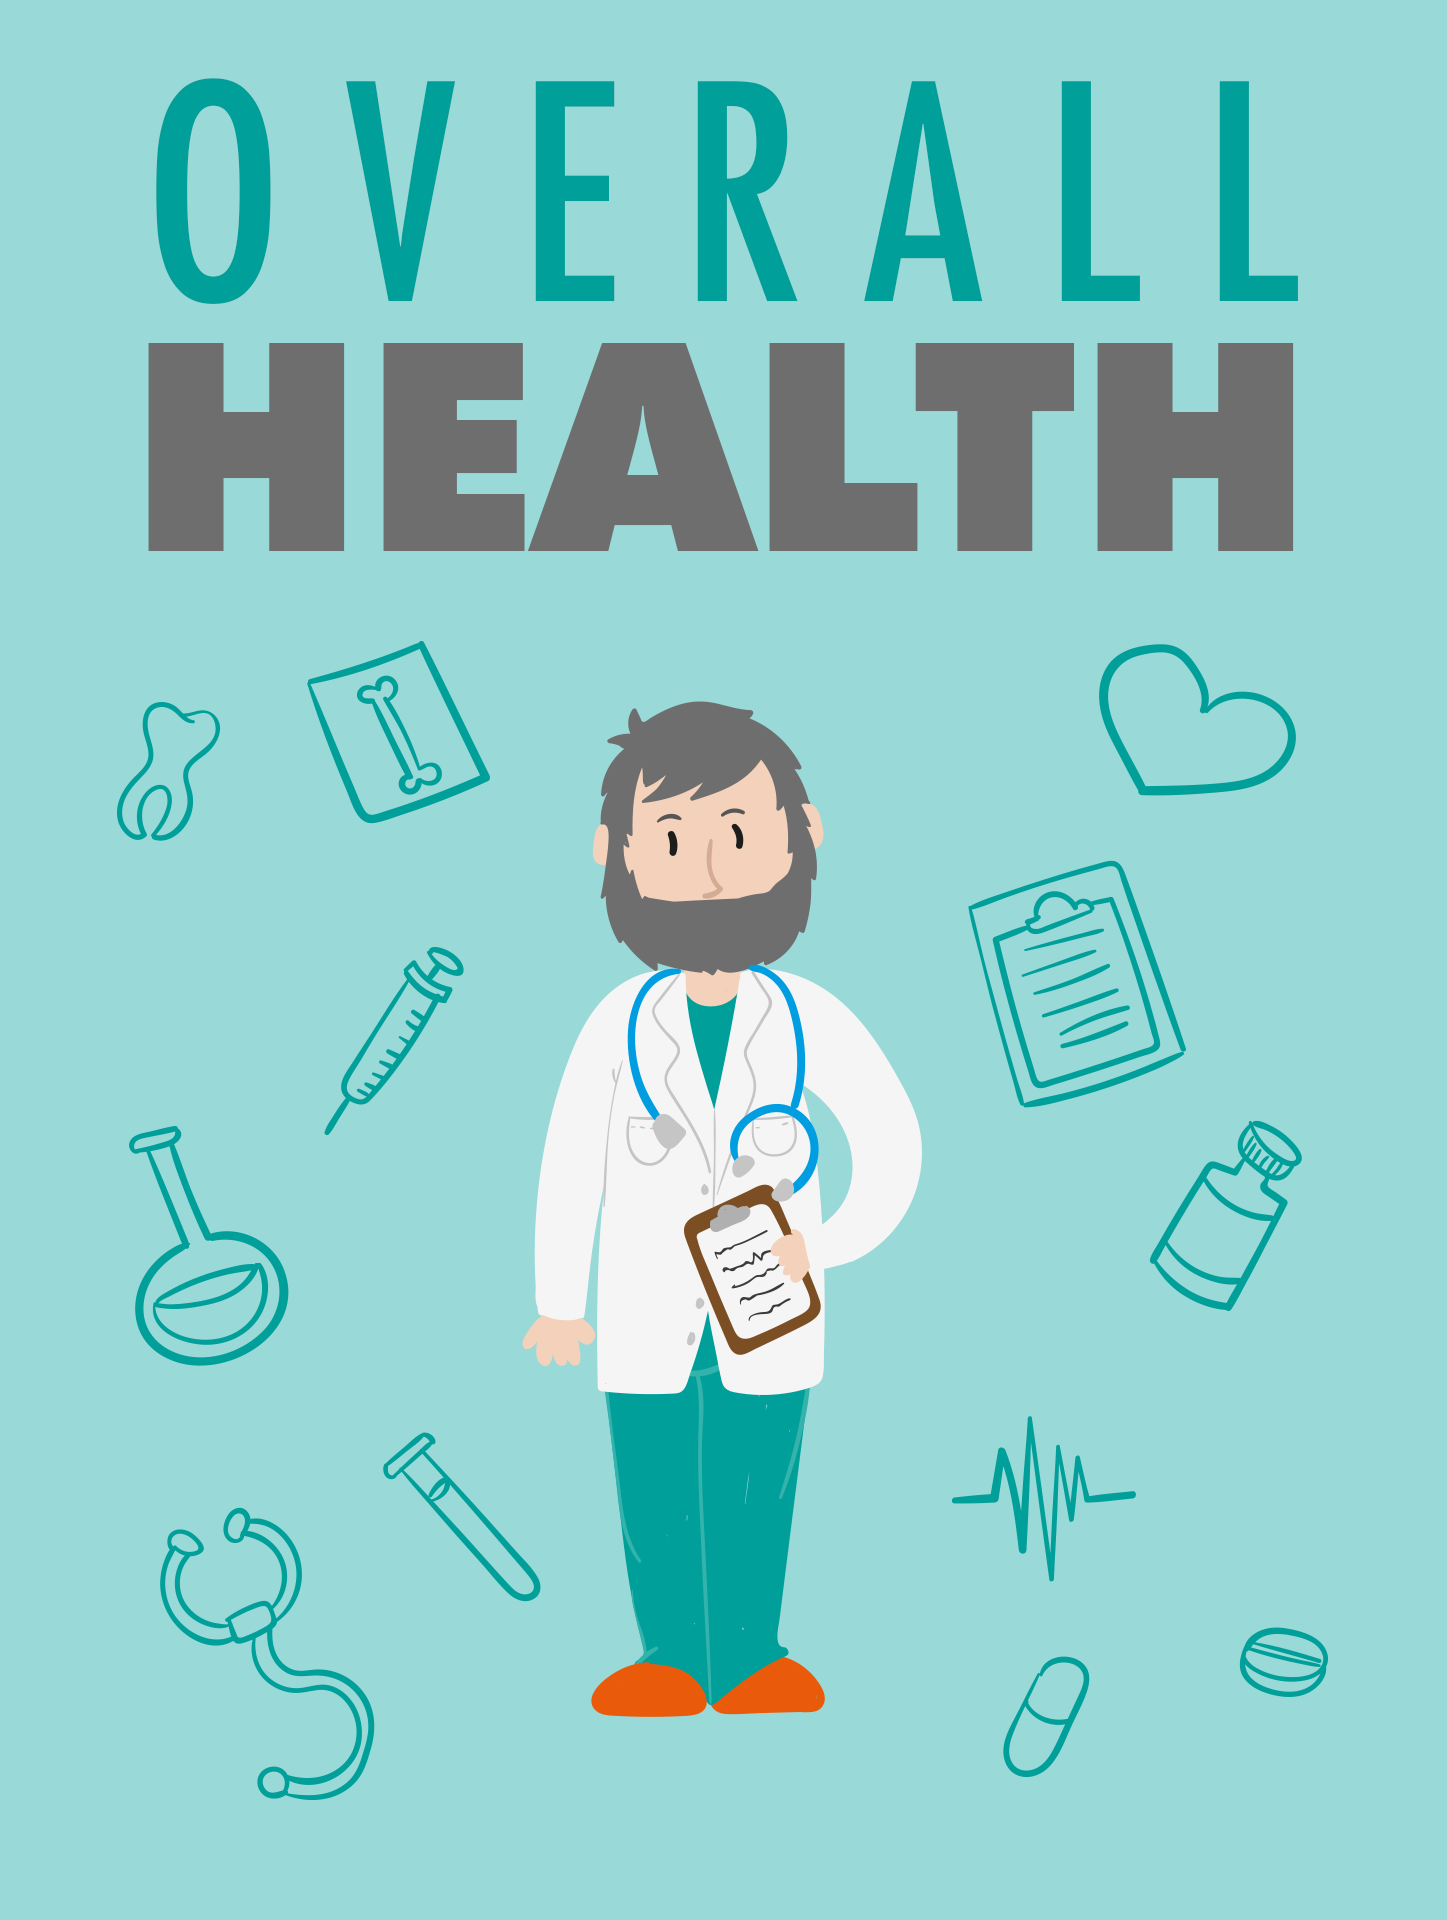 Best Overall Health for you good health